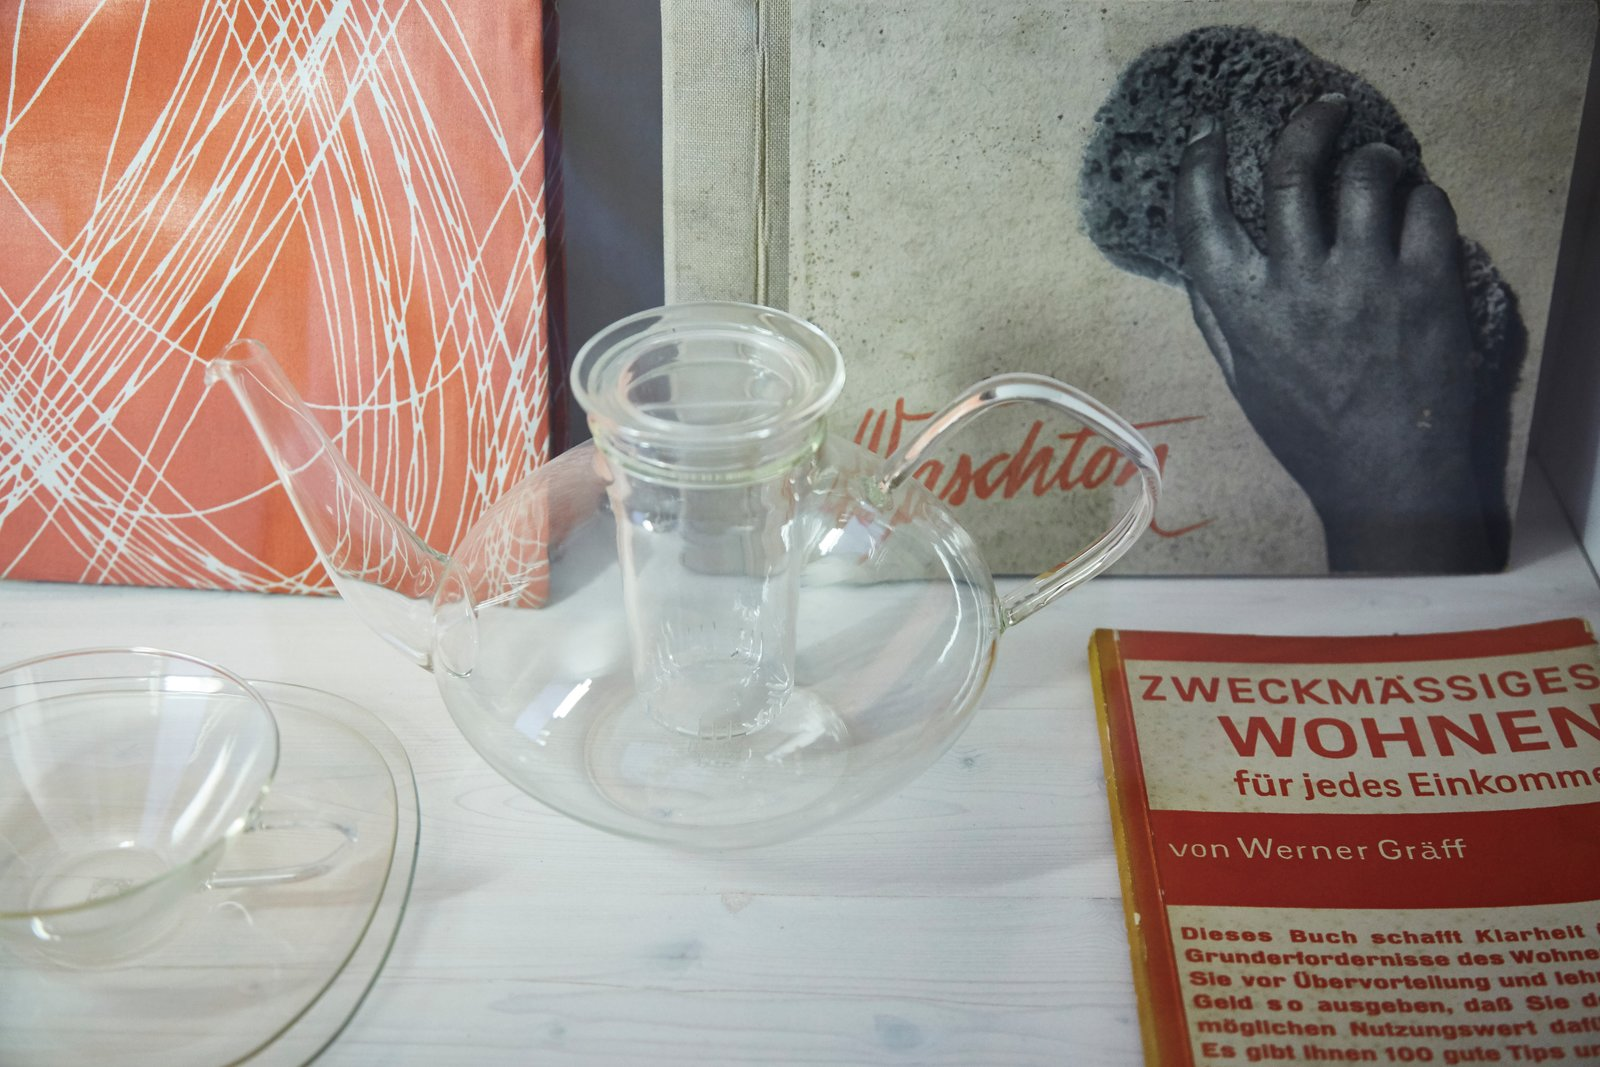 Shown here are objects that inspired the collection below.